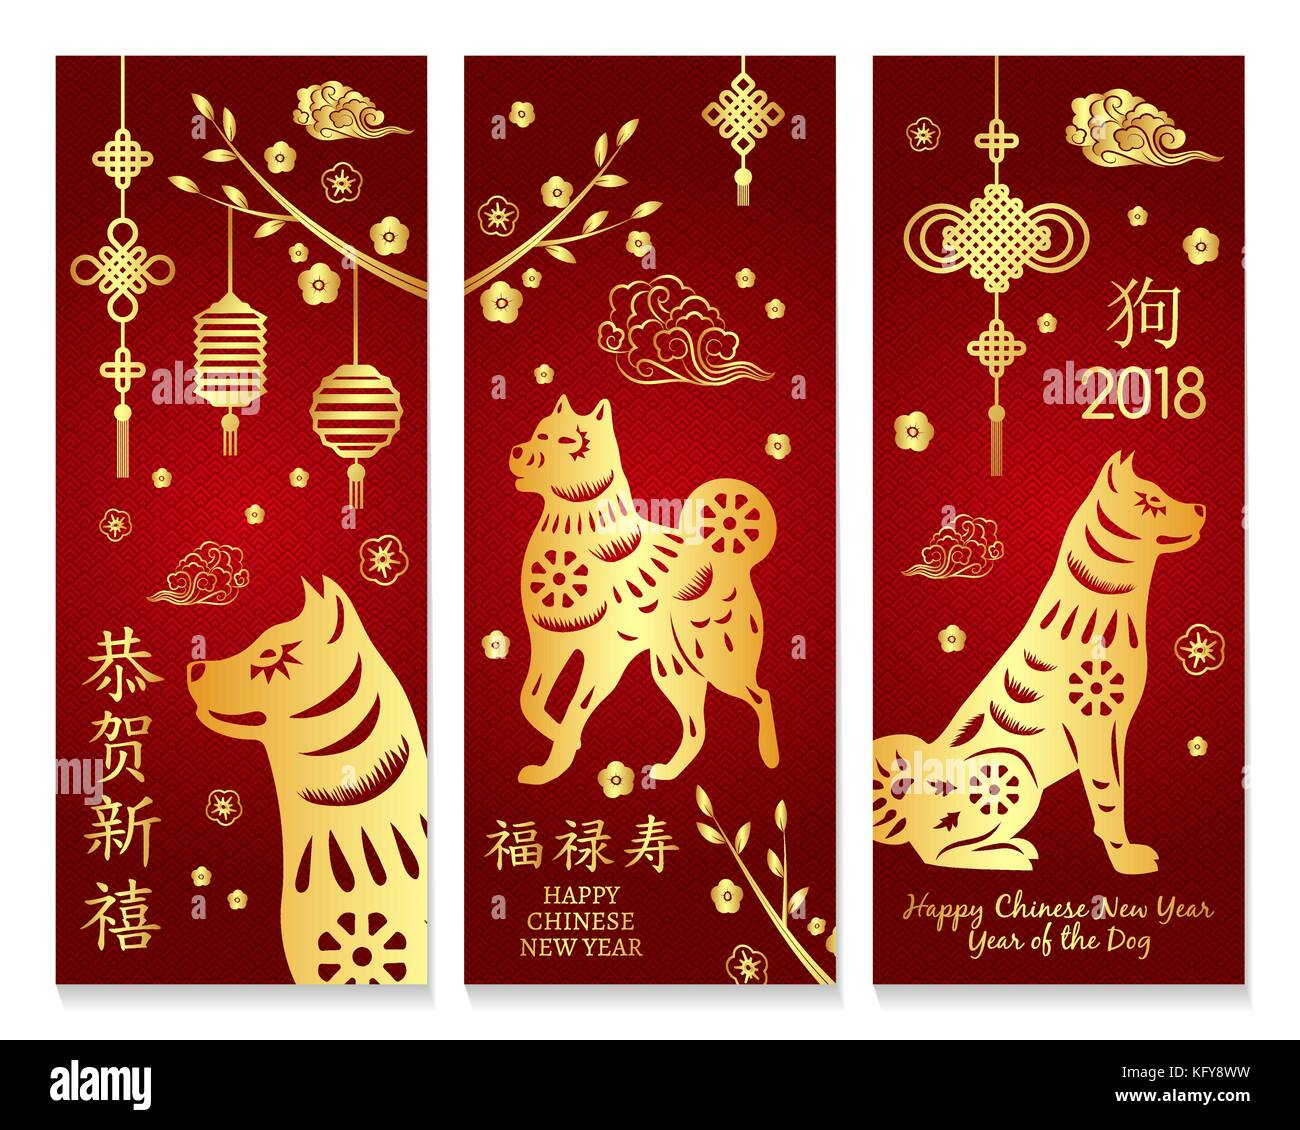 set of banner with dog for chinese new year hieroglyph translation chinese new year of the rooster hieroglyph translation happy new year happiness